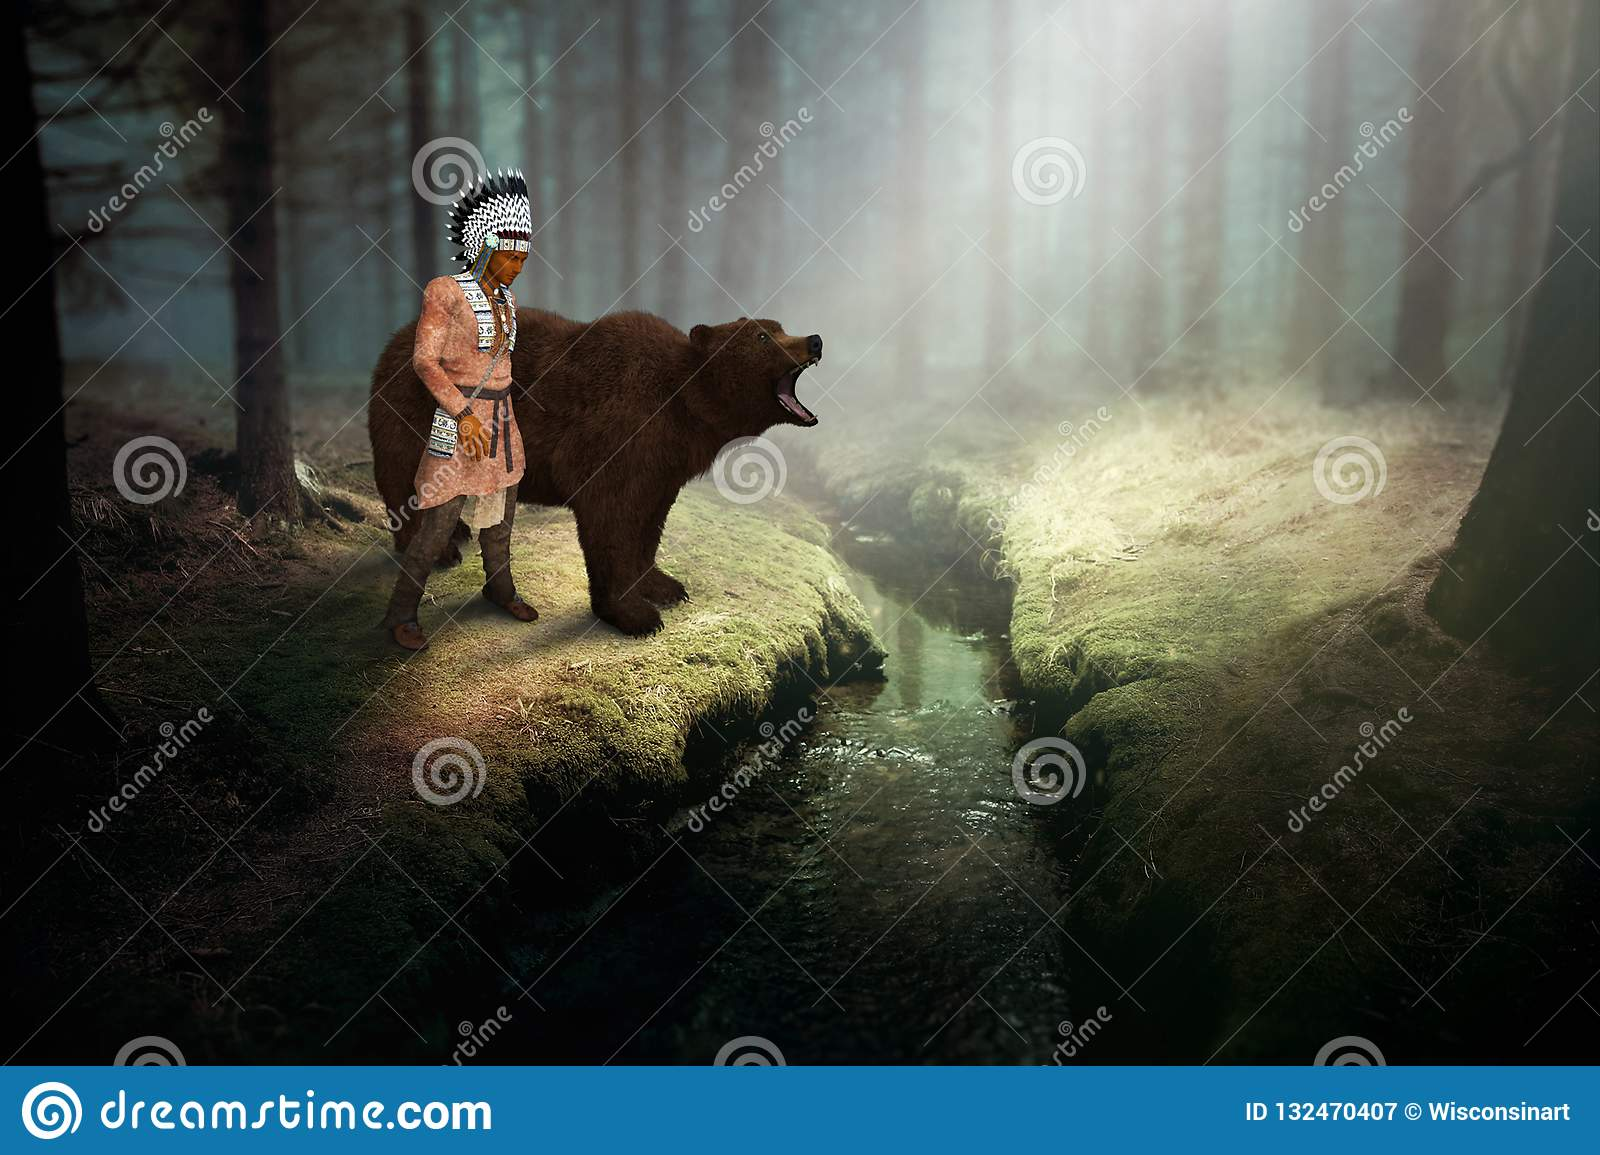 Native American Indian, Grizzly Bear, Nature, Wildlife